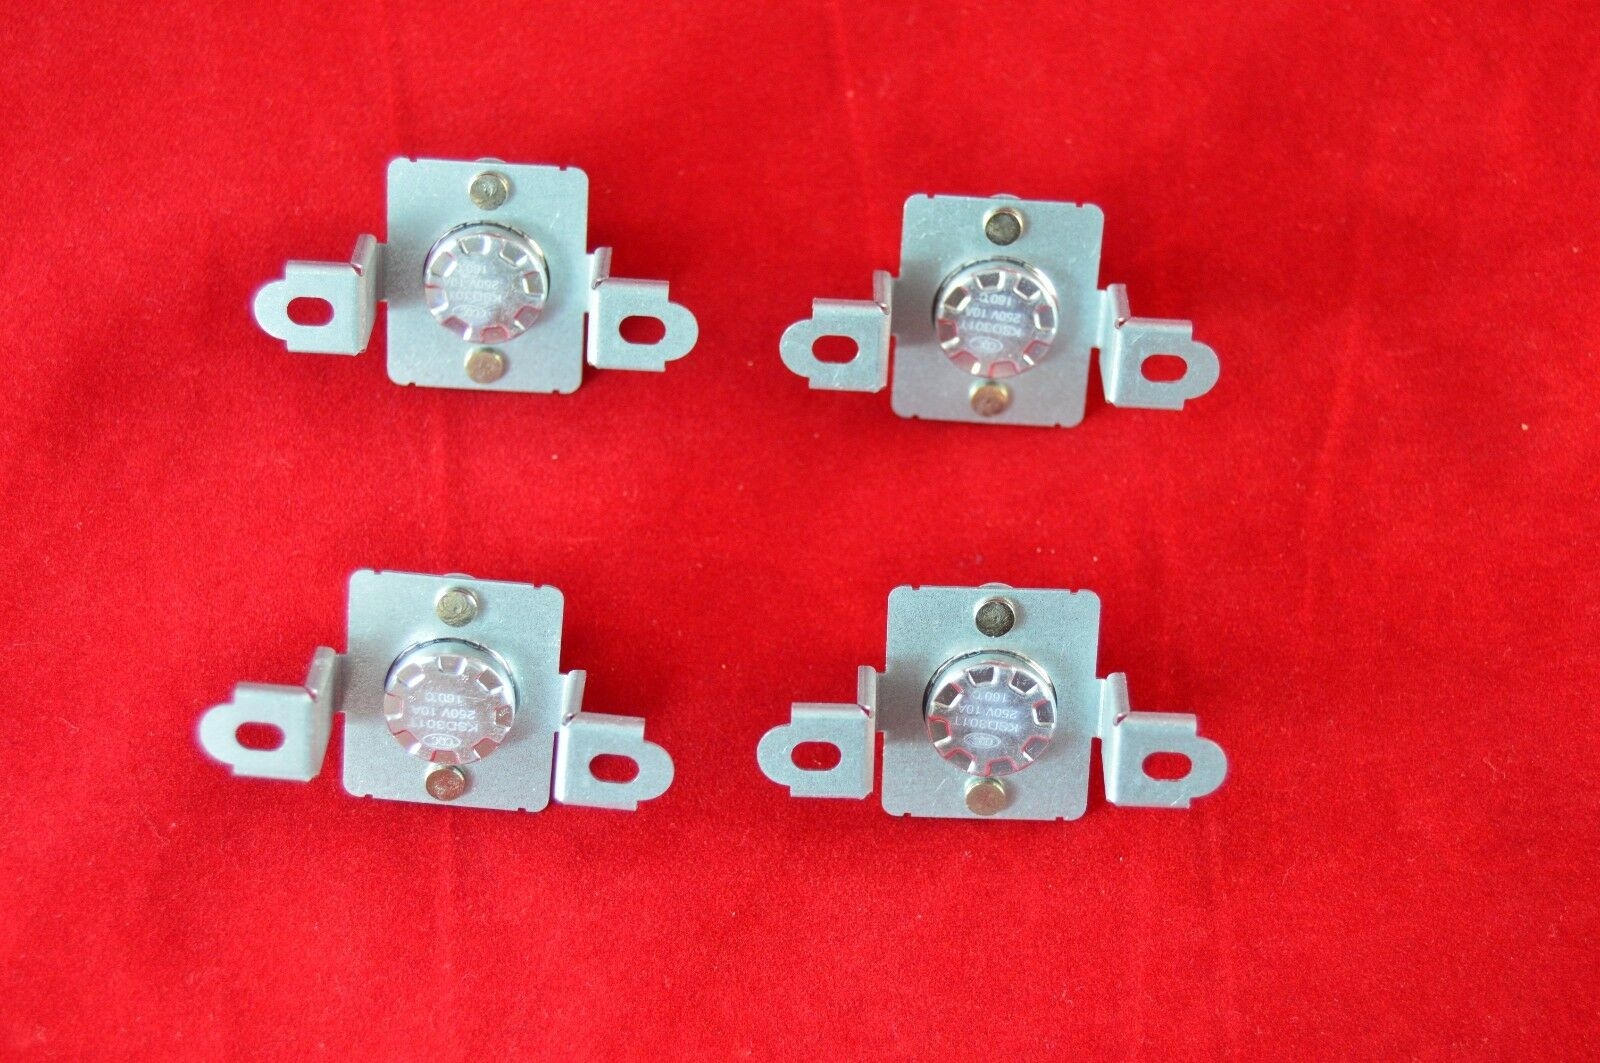 Thermostat for Samsung Dryer DC96-00887A New 4 Pack